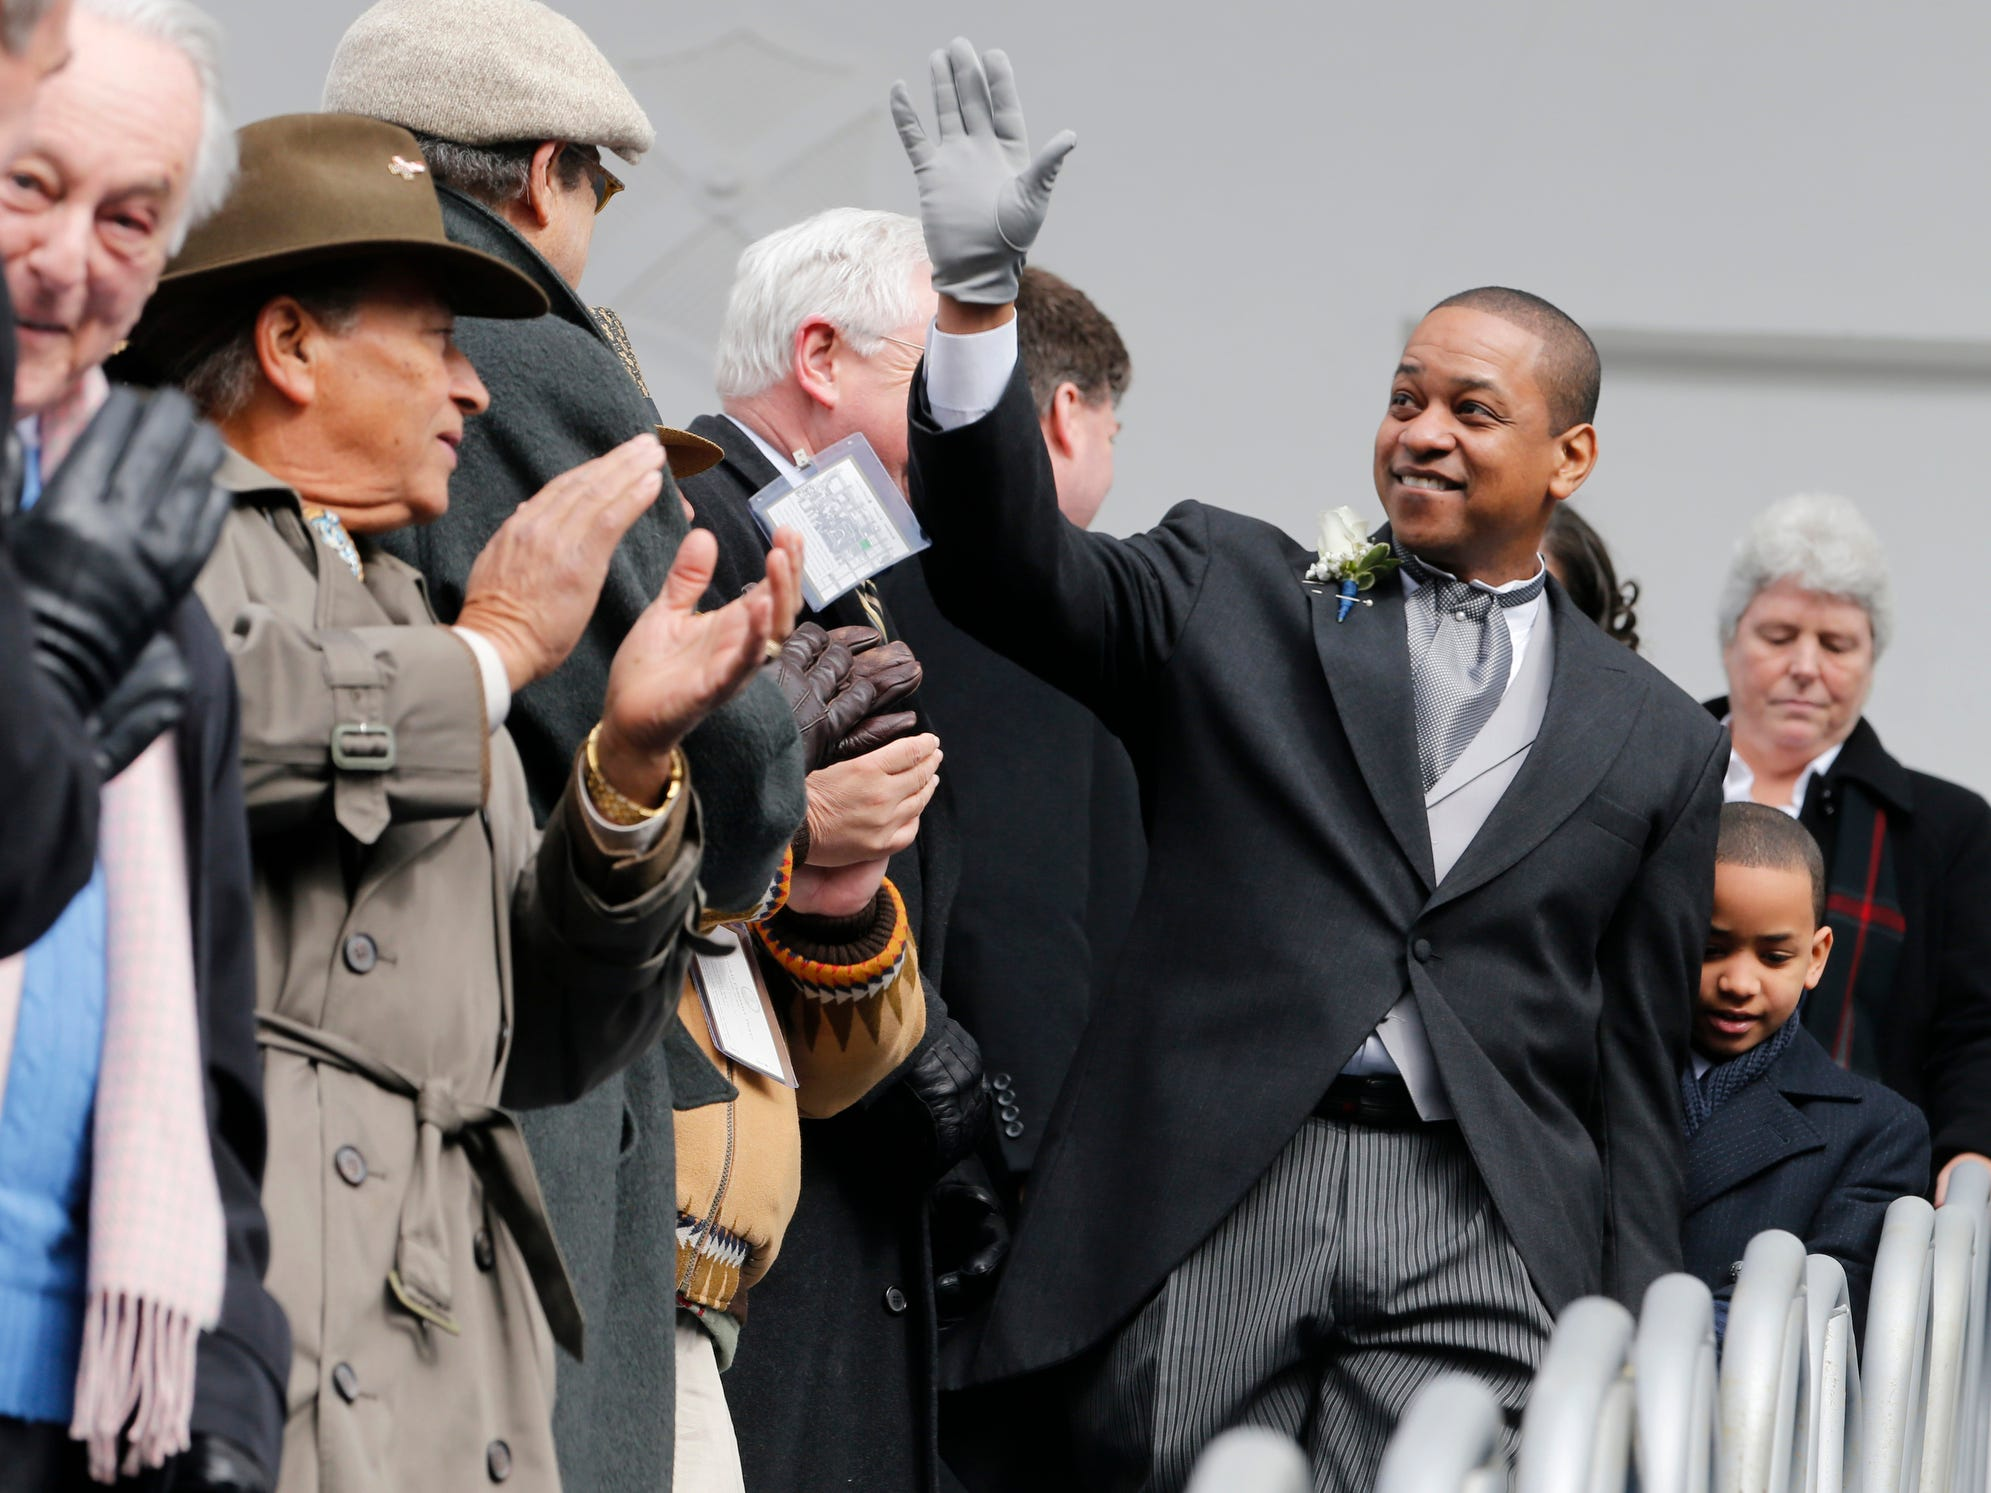 Virginia Lt. Gov. Justin Fairfax waves to the crowd as he arrives for inaugural ceremonies at the Capitol in Richmond, Va., Saturday, Jan. 13, 2018. (AP Photo/Steve Helber)